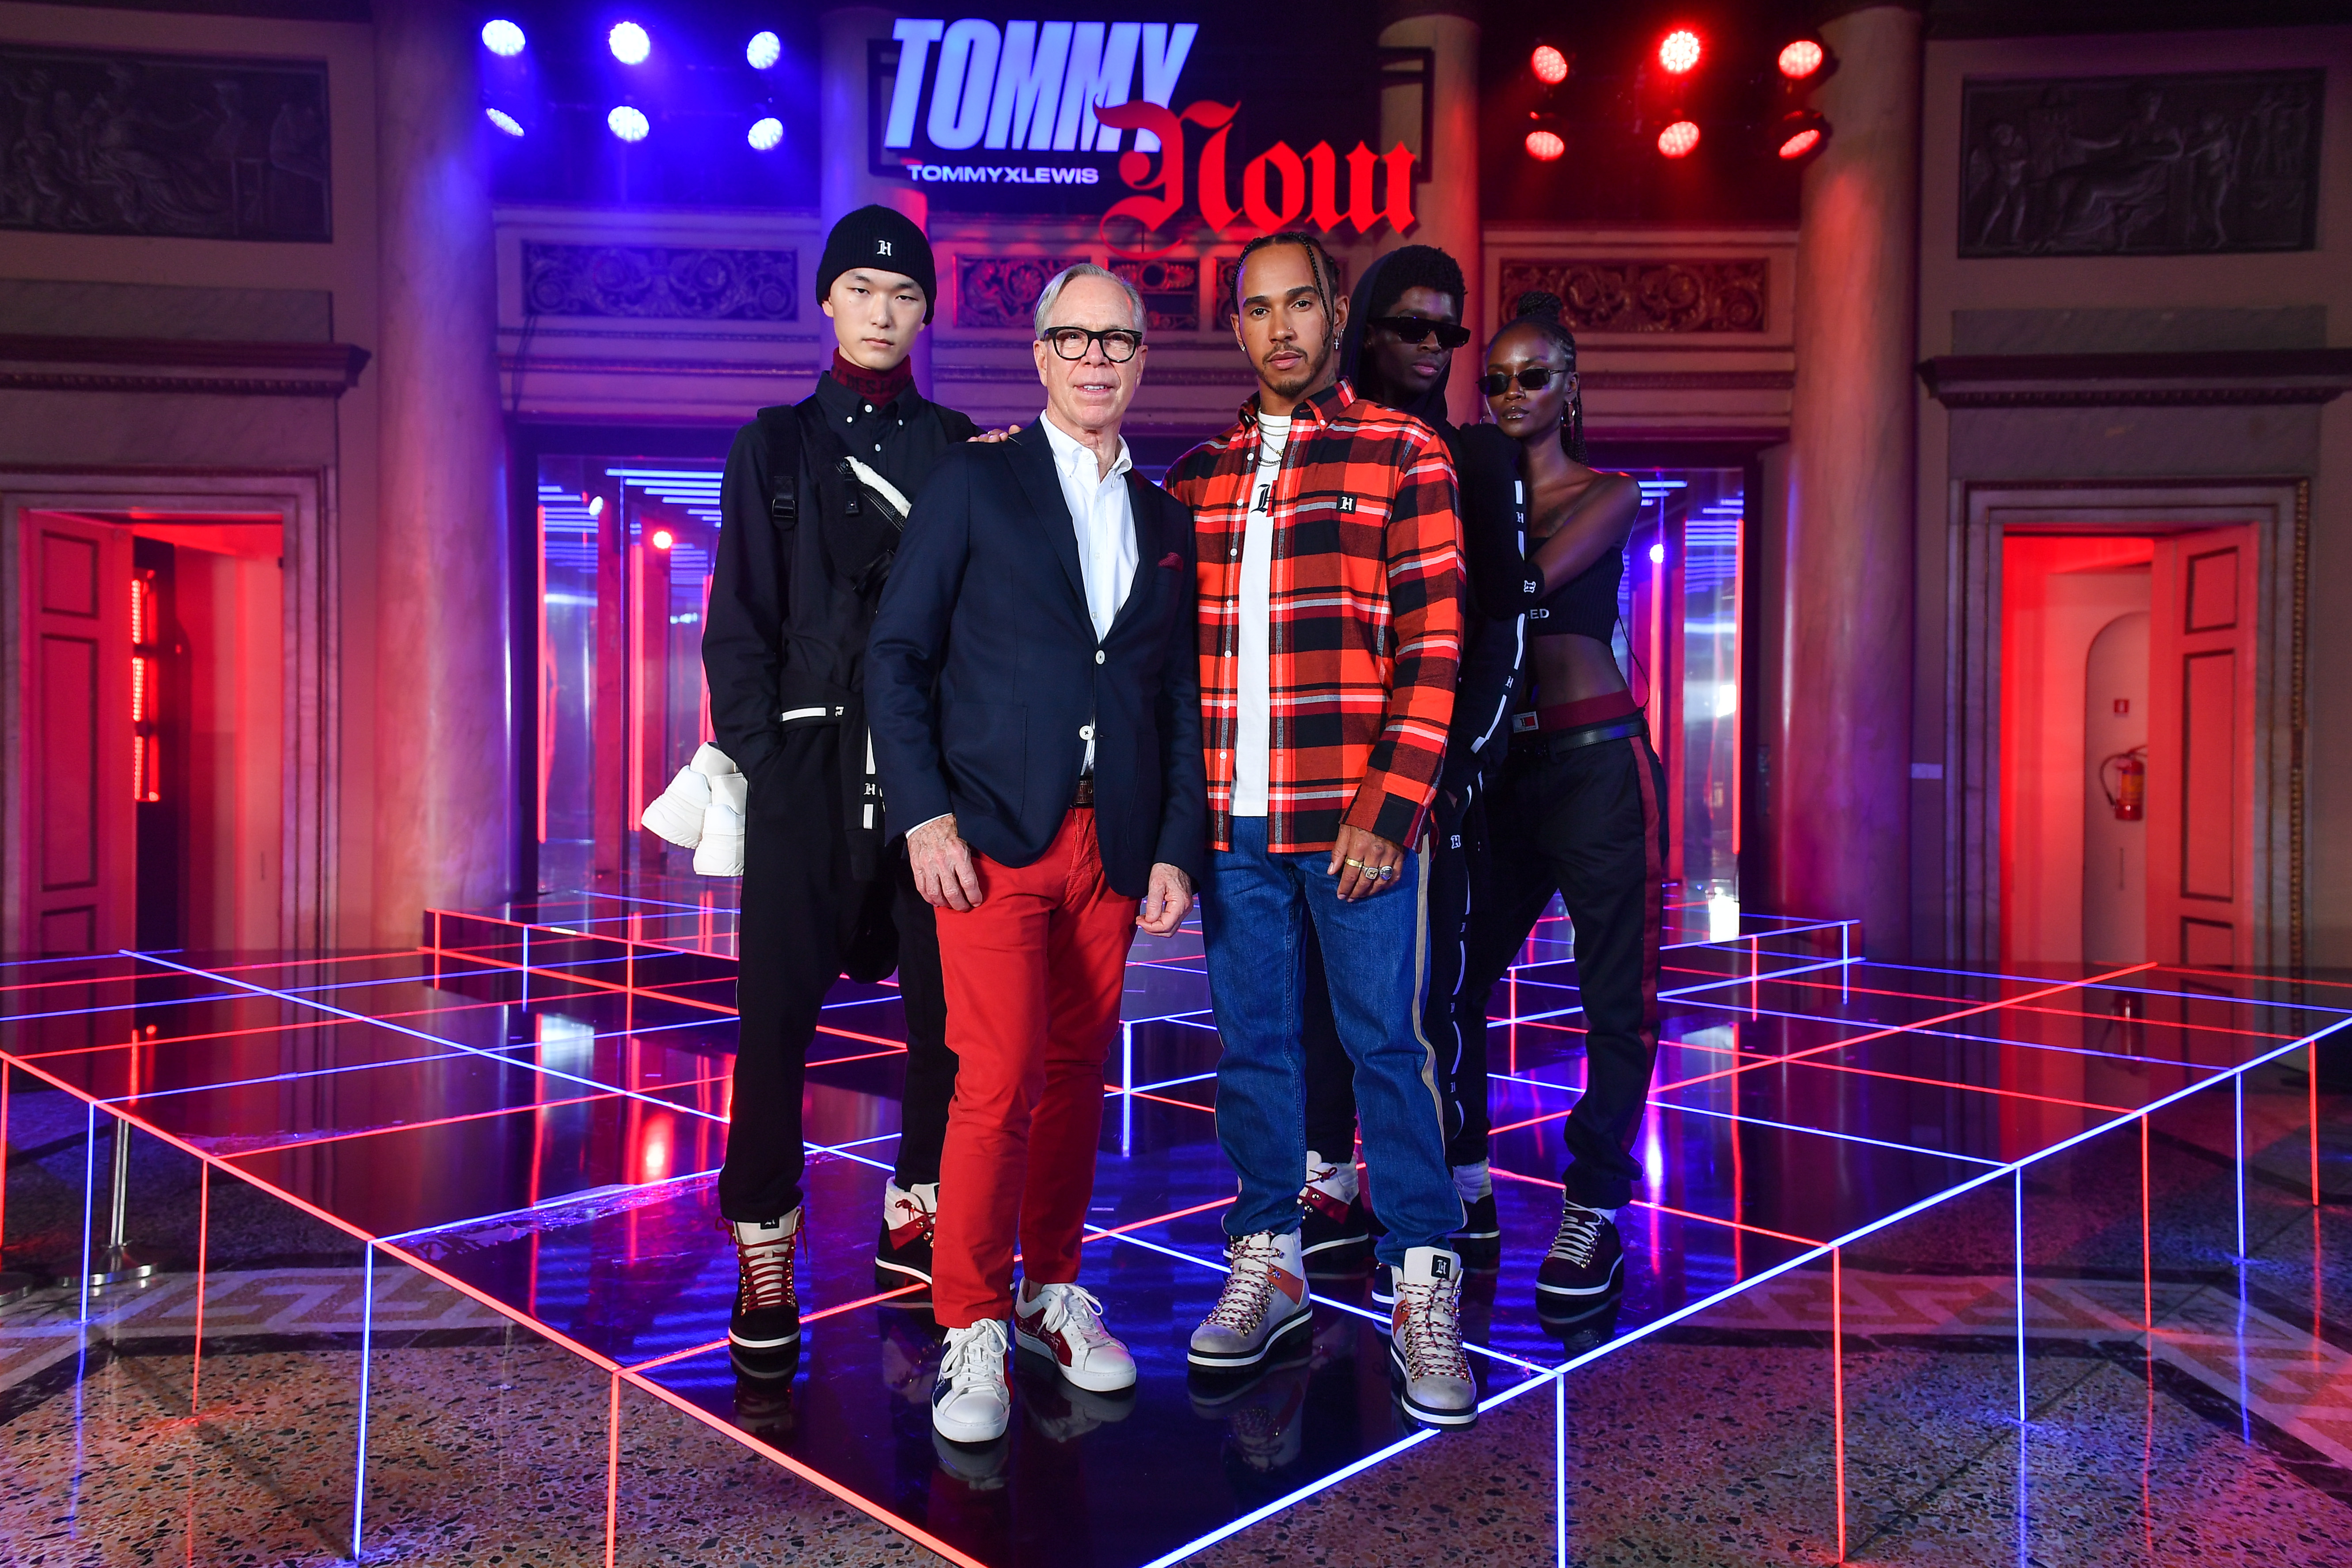 RIKY RICK WEARS TOMMY HILFIGER TO THE FALL 2019 TOMMYNOW TOMMYXLEWIS EXPERIENTIAL EVENT IN MILAN Xu Meen Tommy Hilfiger Lewis Hamilton Alton Mason Riley Montana JPG